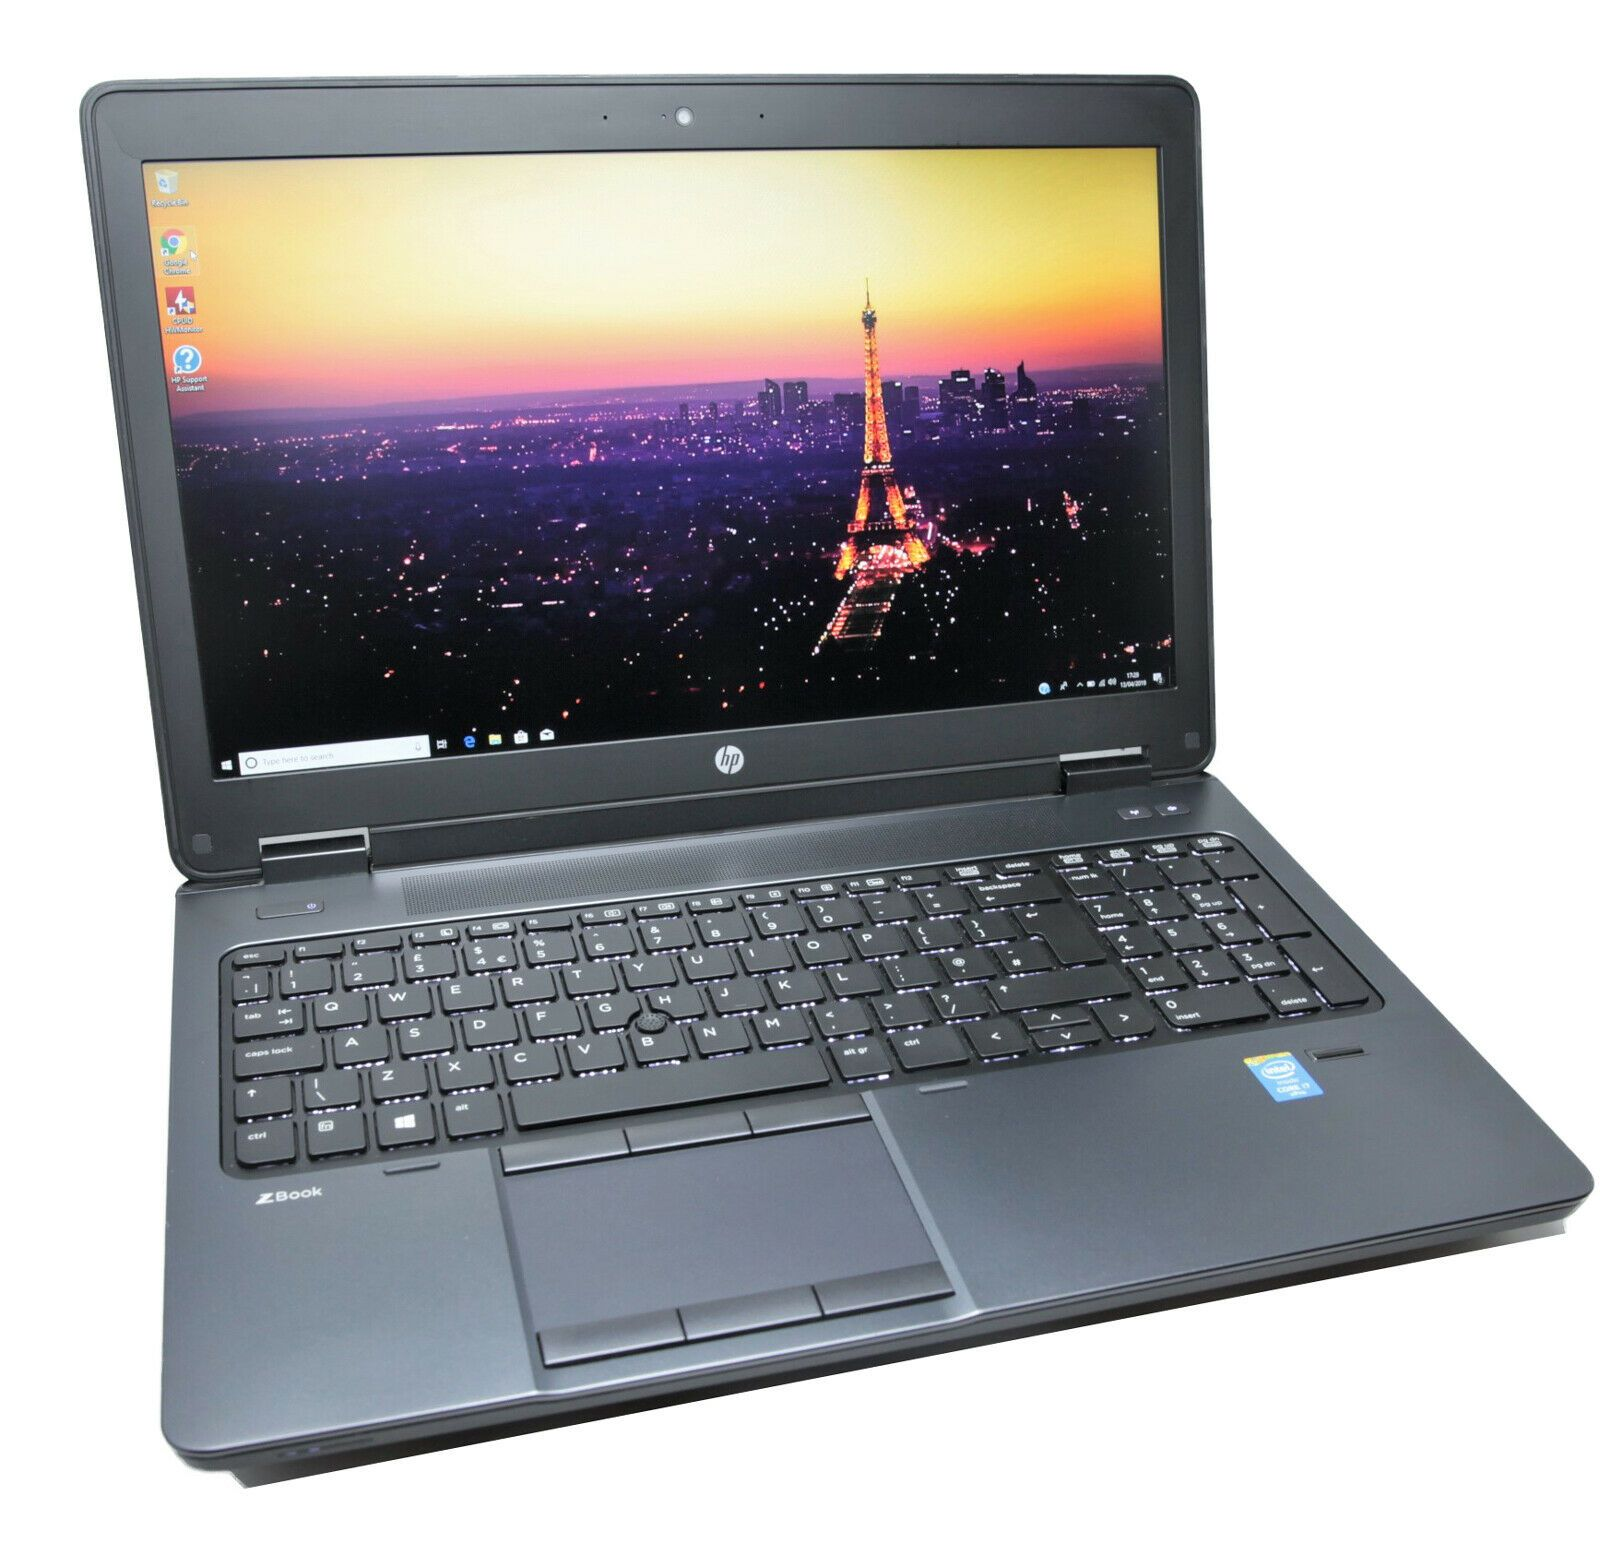 HP ZBook 15 G2 CAD Laptop: 32GB RAM, 256GB SSD+HDD, Core i7, Warranty, VAT - CruiseTech